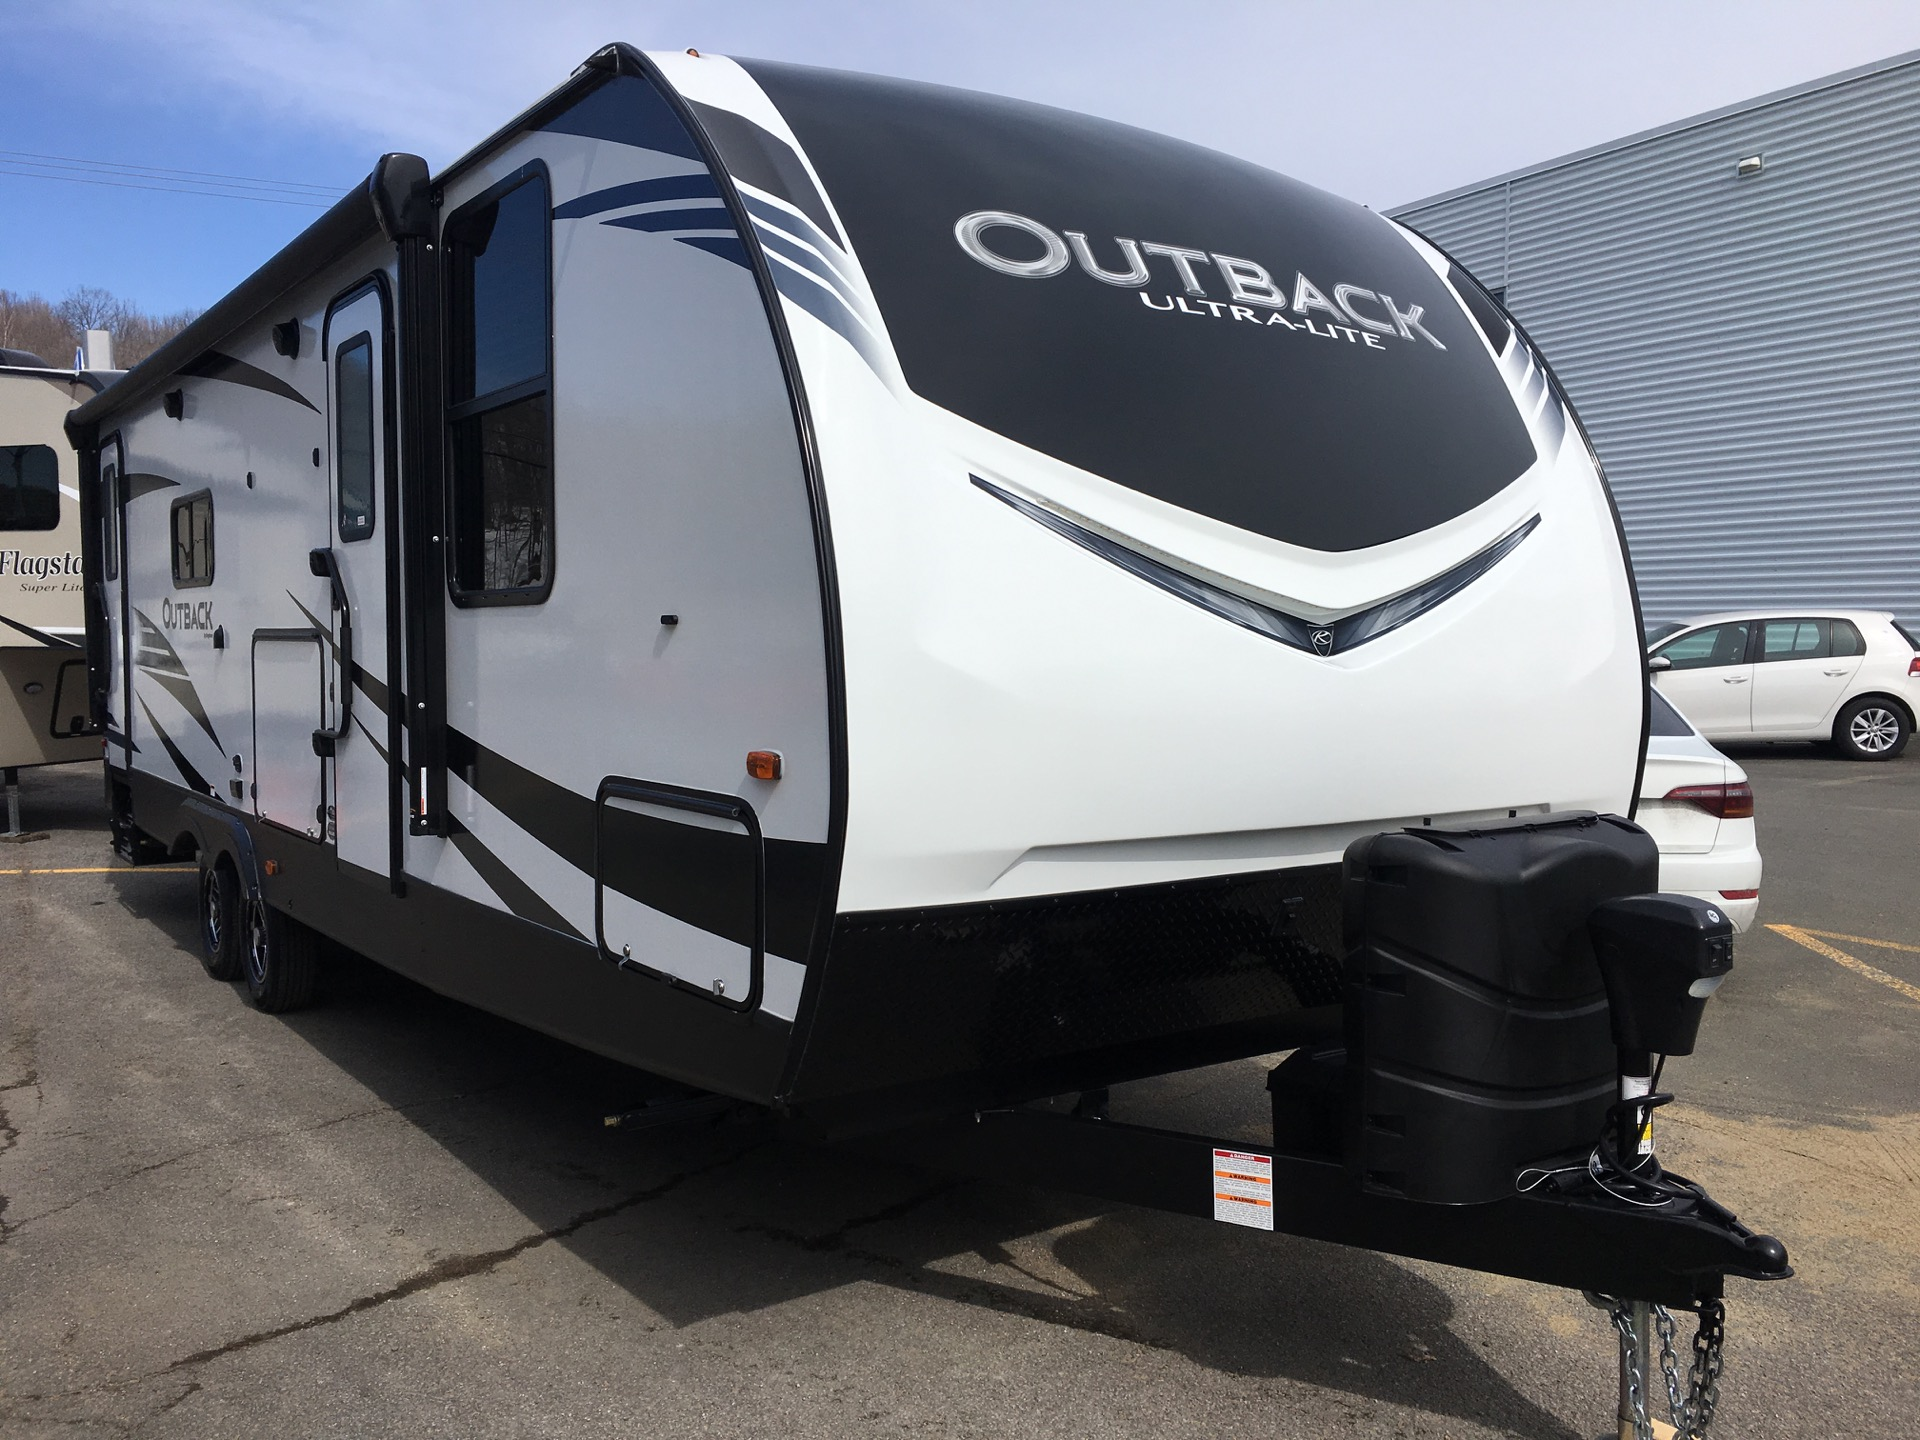 Outback Ultra-Lite 261 UBH